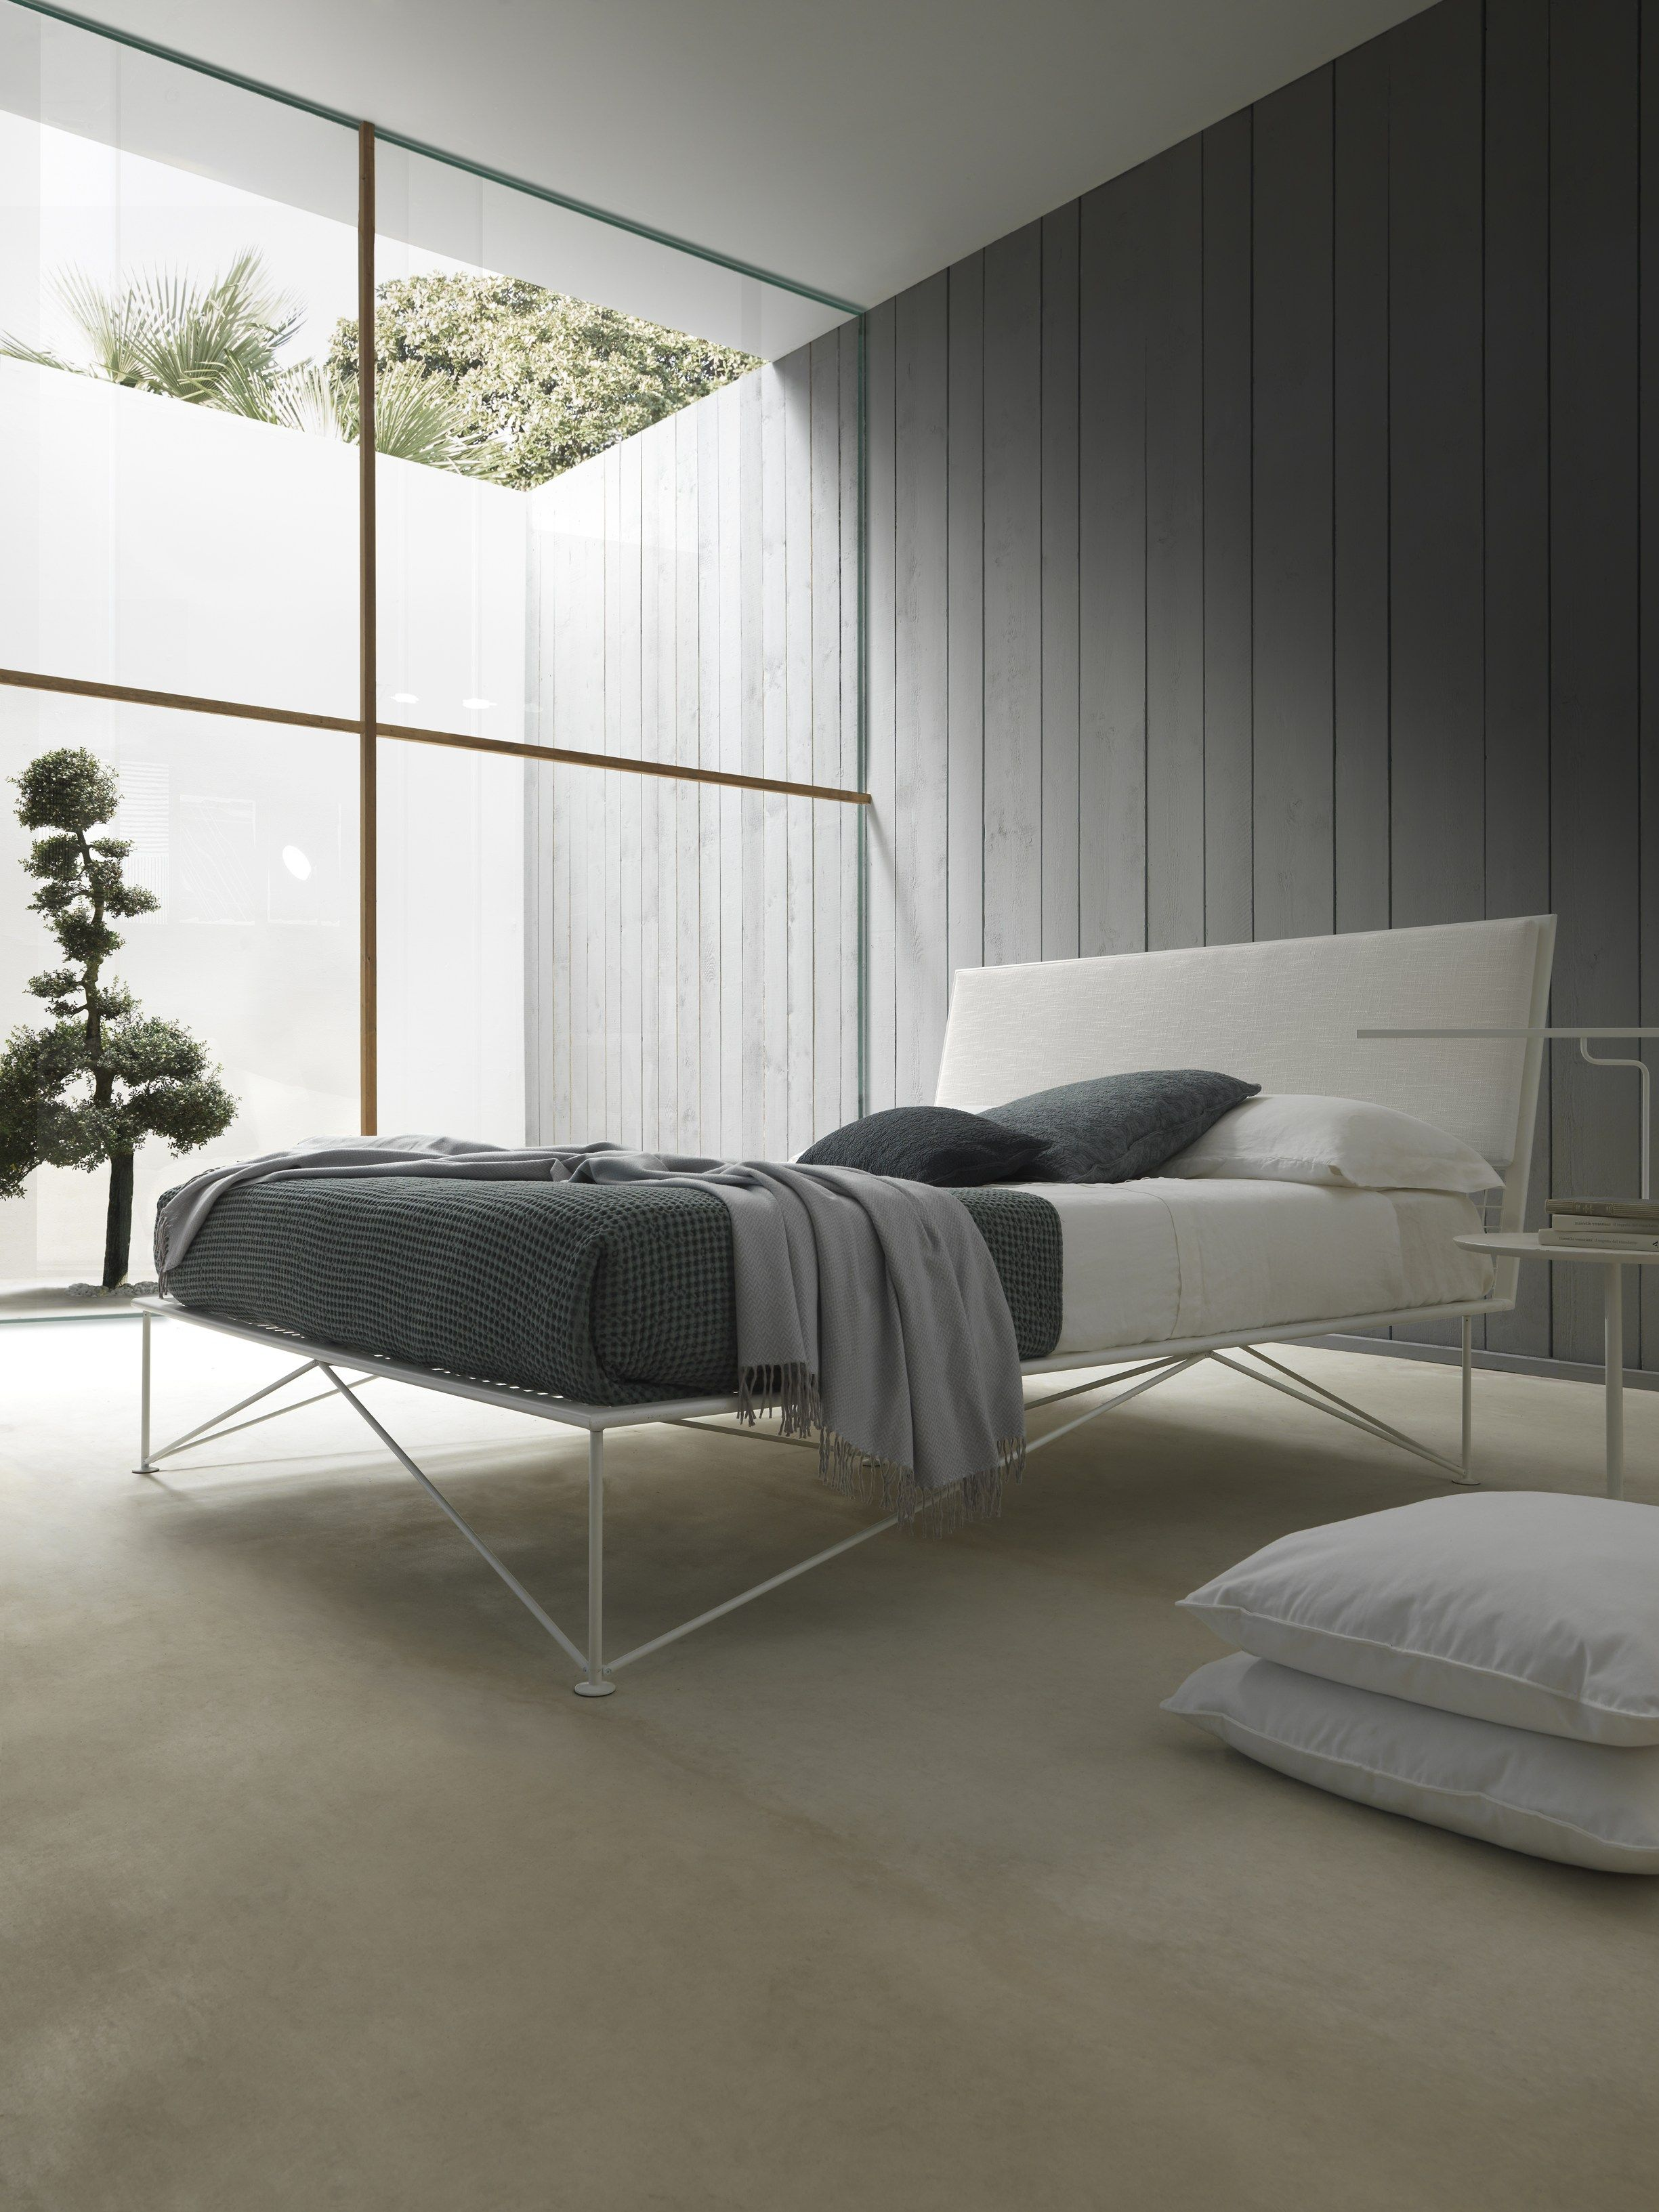 by make pin grey to is bed an submitted look i at months of winter ago white all updated attempt a cozy minimal adding my bedroom picture for here the